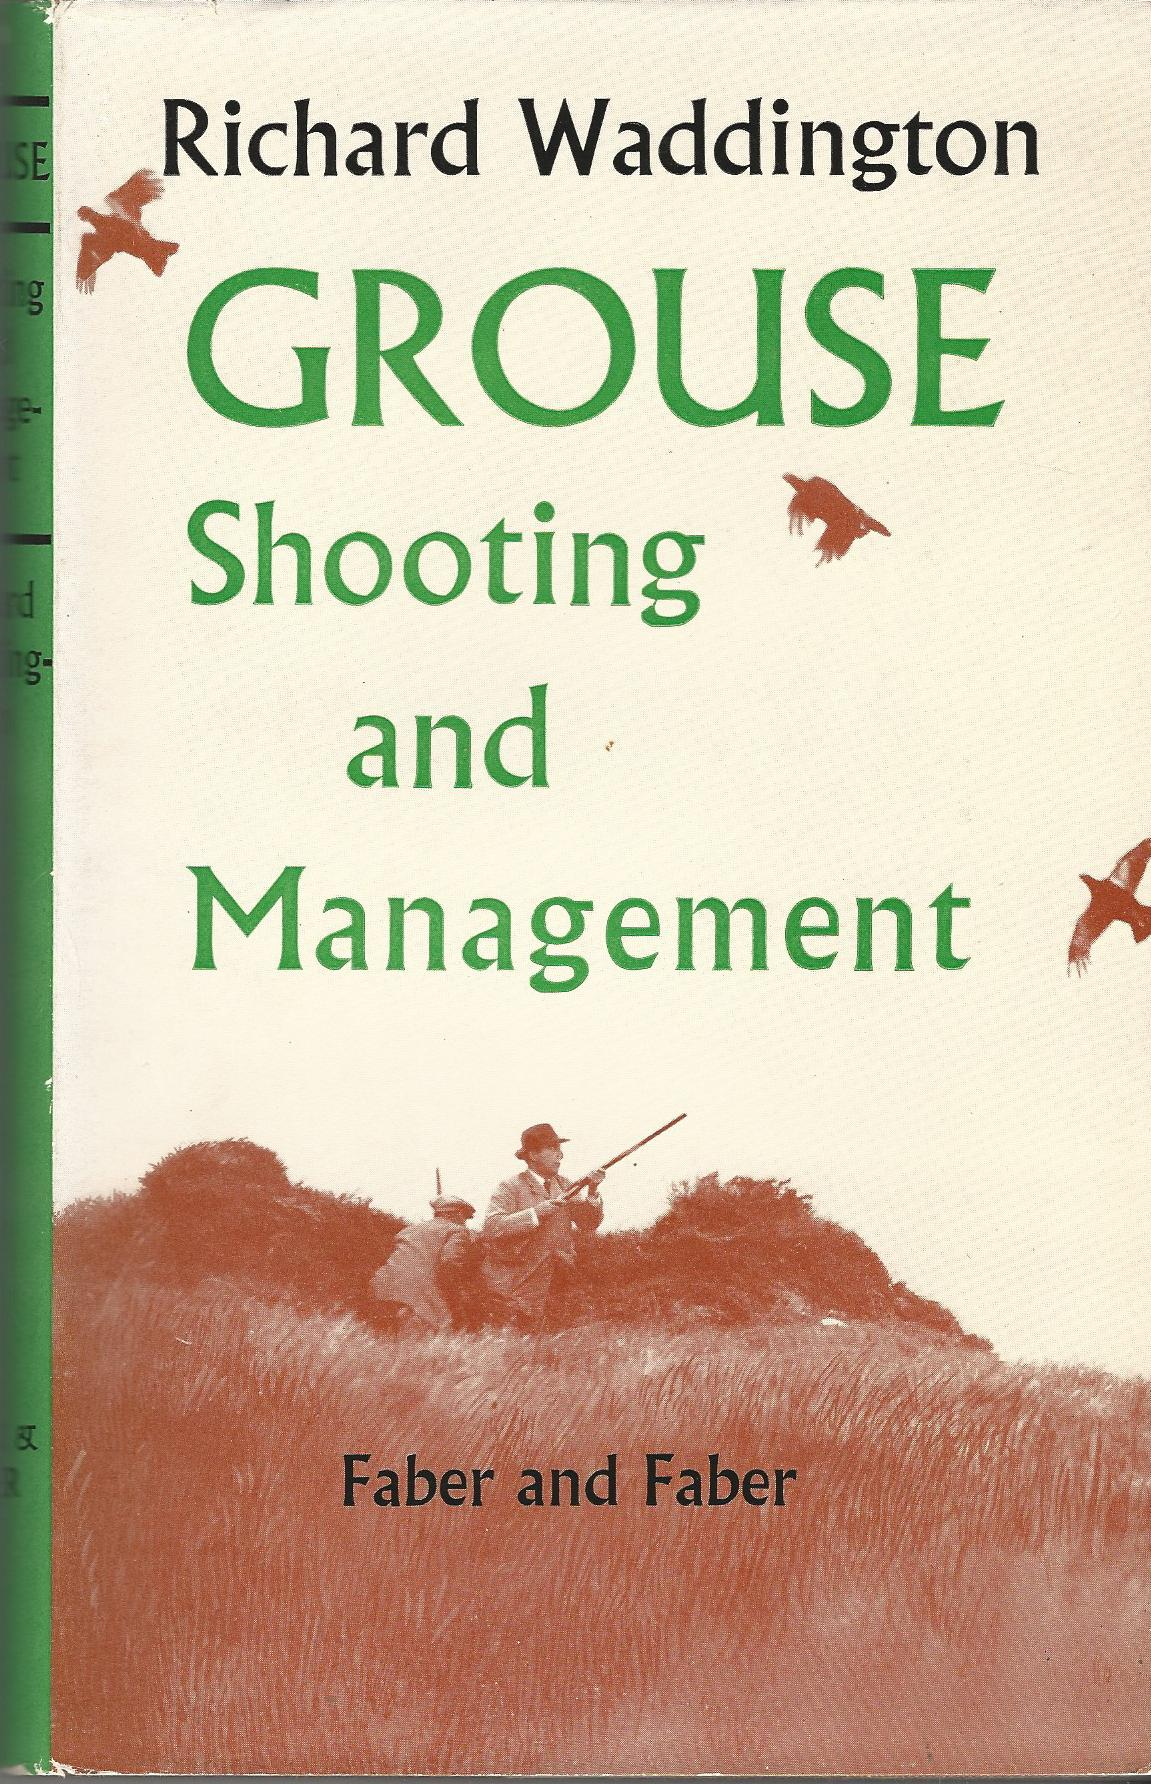 Image for Grouse Shooting and Management.